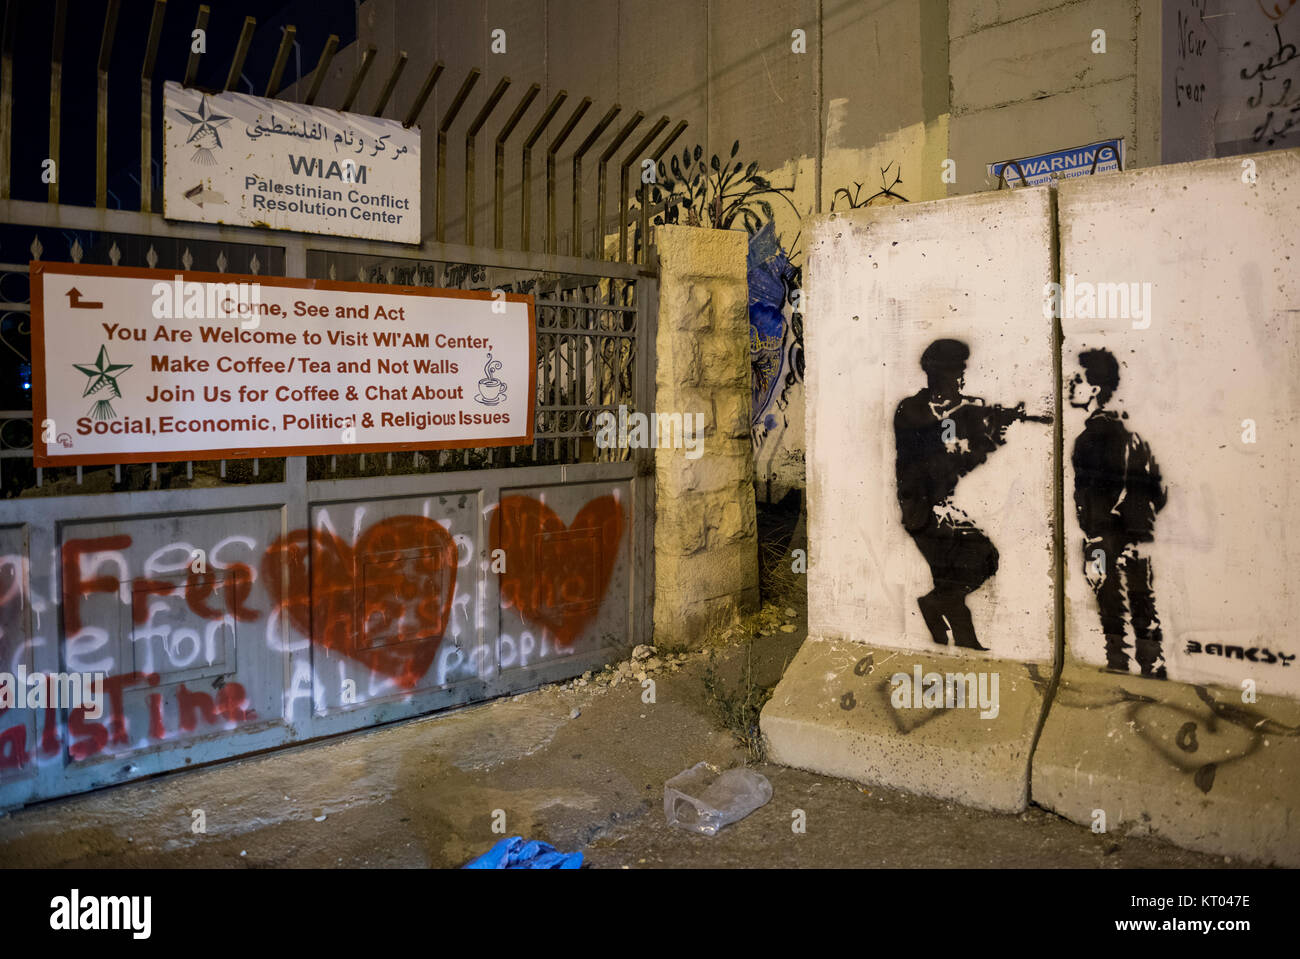 The Palestinian Conflict Resolution Centre, Bethlehem - Stock Image